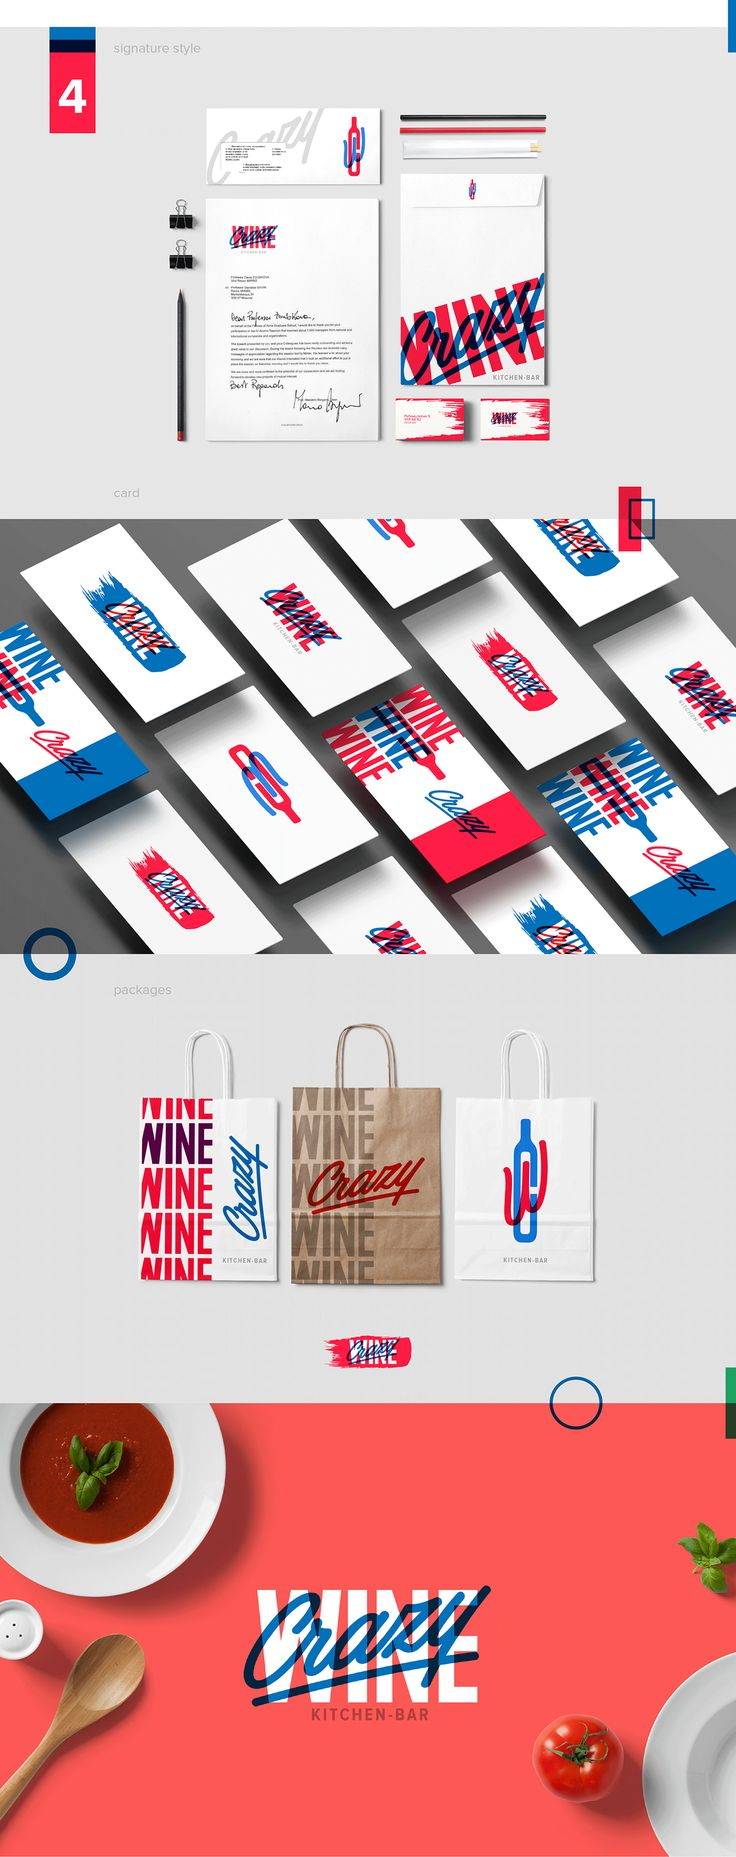 Crazy Wine - branding on Behance